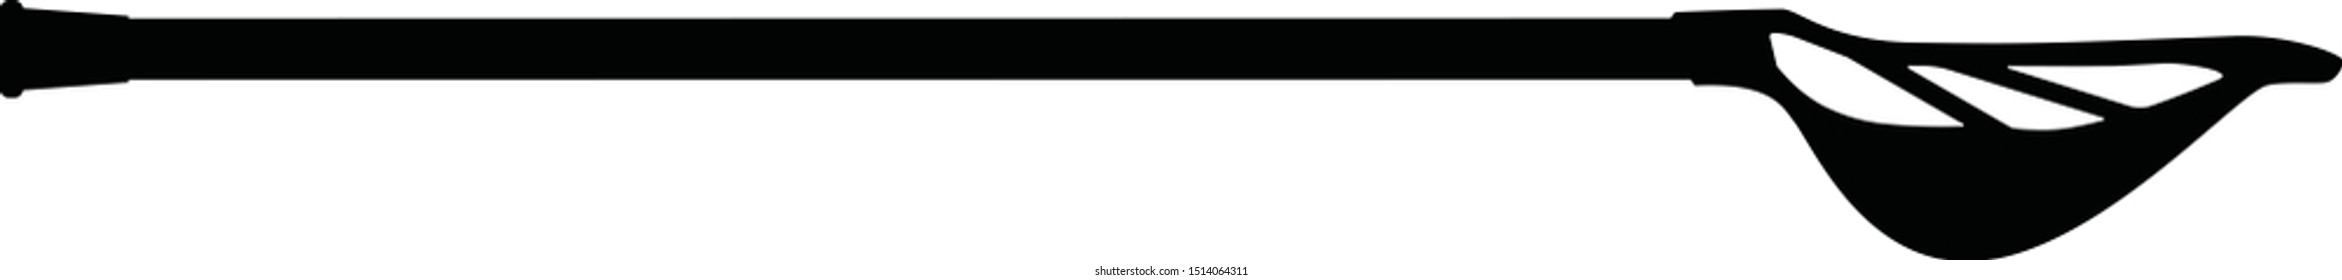 Vector of a men's lacrosse stick. This includes the complete lacrosse stick (lacrosse head and lacrosse shaft).